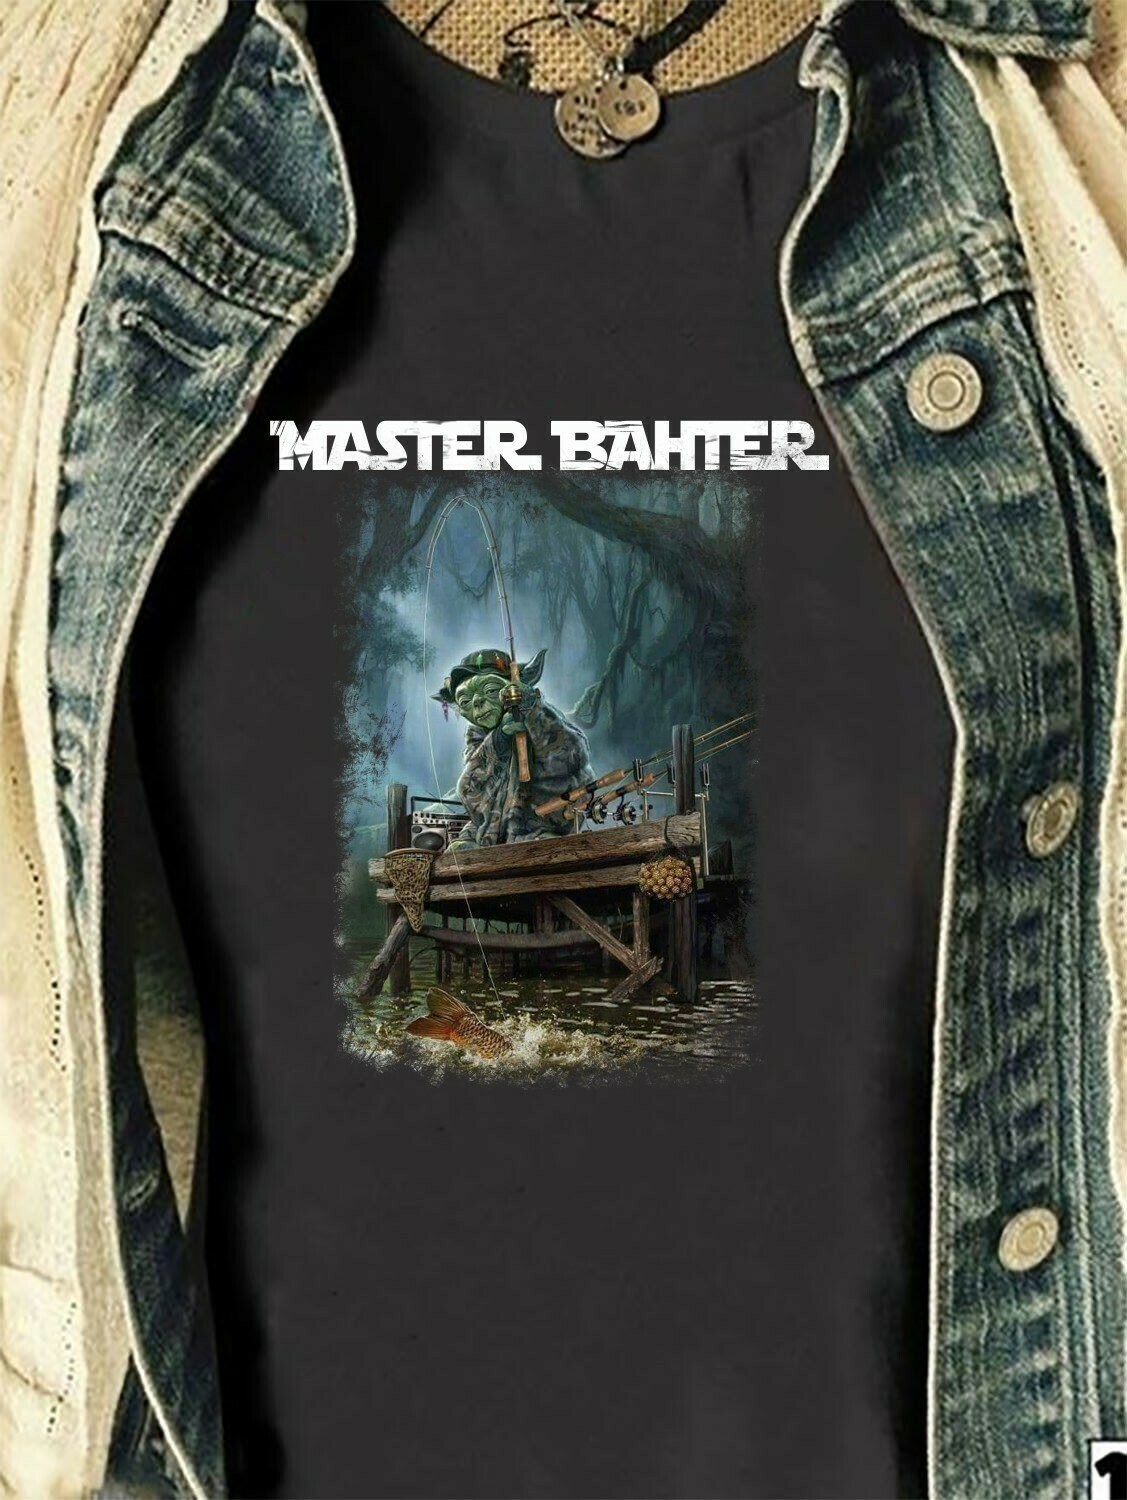 Master Bahter Baby Yoda Go Fishing Disney The Mandalorian With Death Star Wars Movie Vacay Mode Lovely Mickey T-Shirt Long Sleeve Sweatshirt Hoodie Jolly Family Gifts